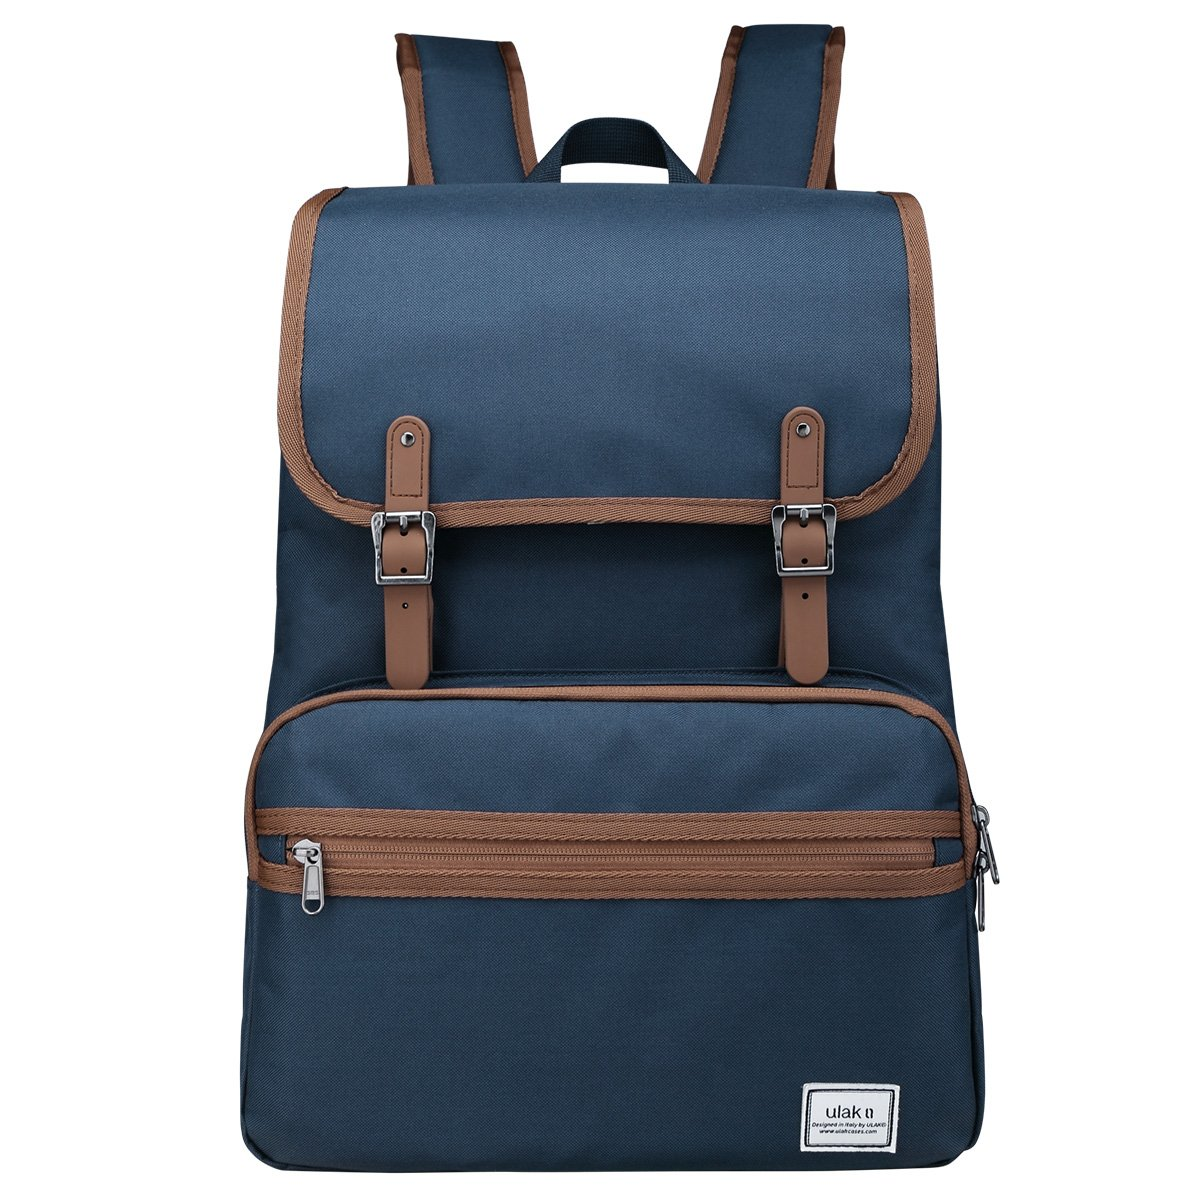 Laptop Backpack, Lightweight College School Backpack,Travel Every Day Backpack,ULAK Slim Anti Theft Computer Book Bags Water-resistant Eco-friendly Bag Fits Under 15.6'' Laptop & Note Book- Navy Blue